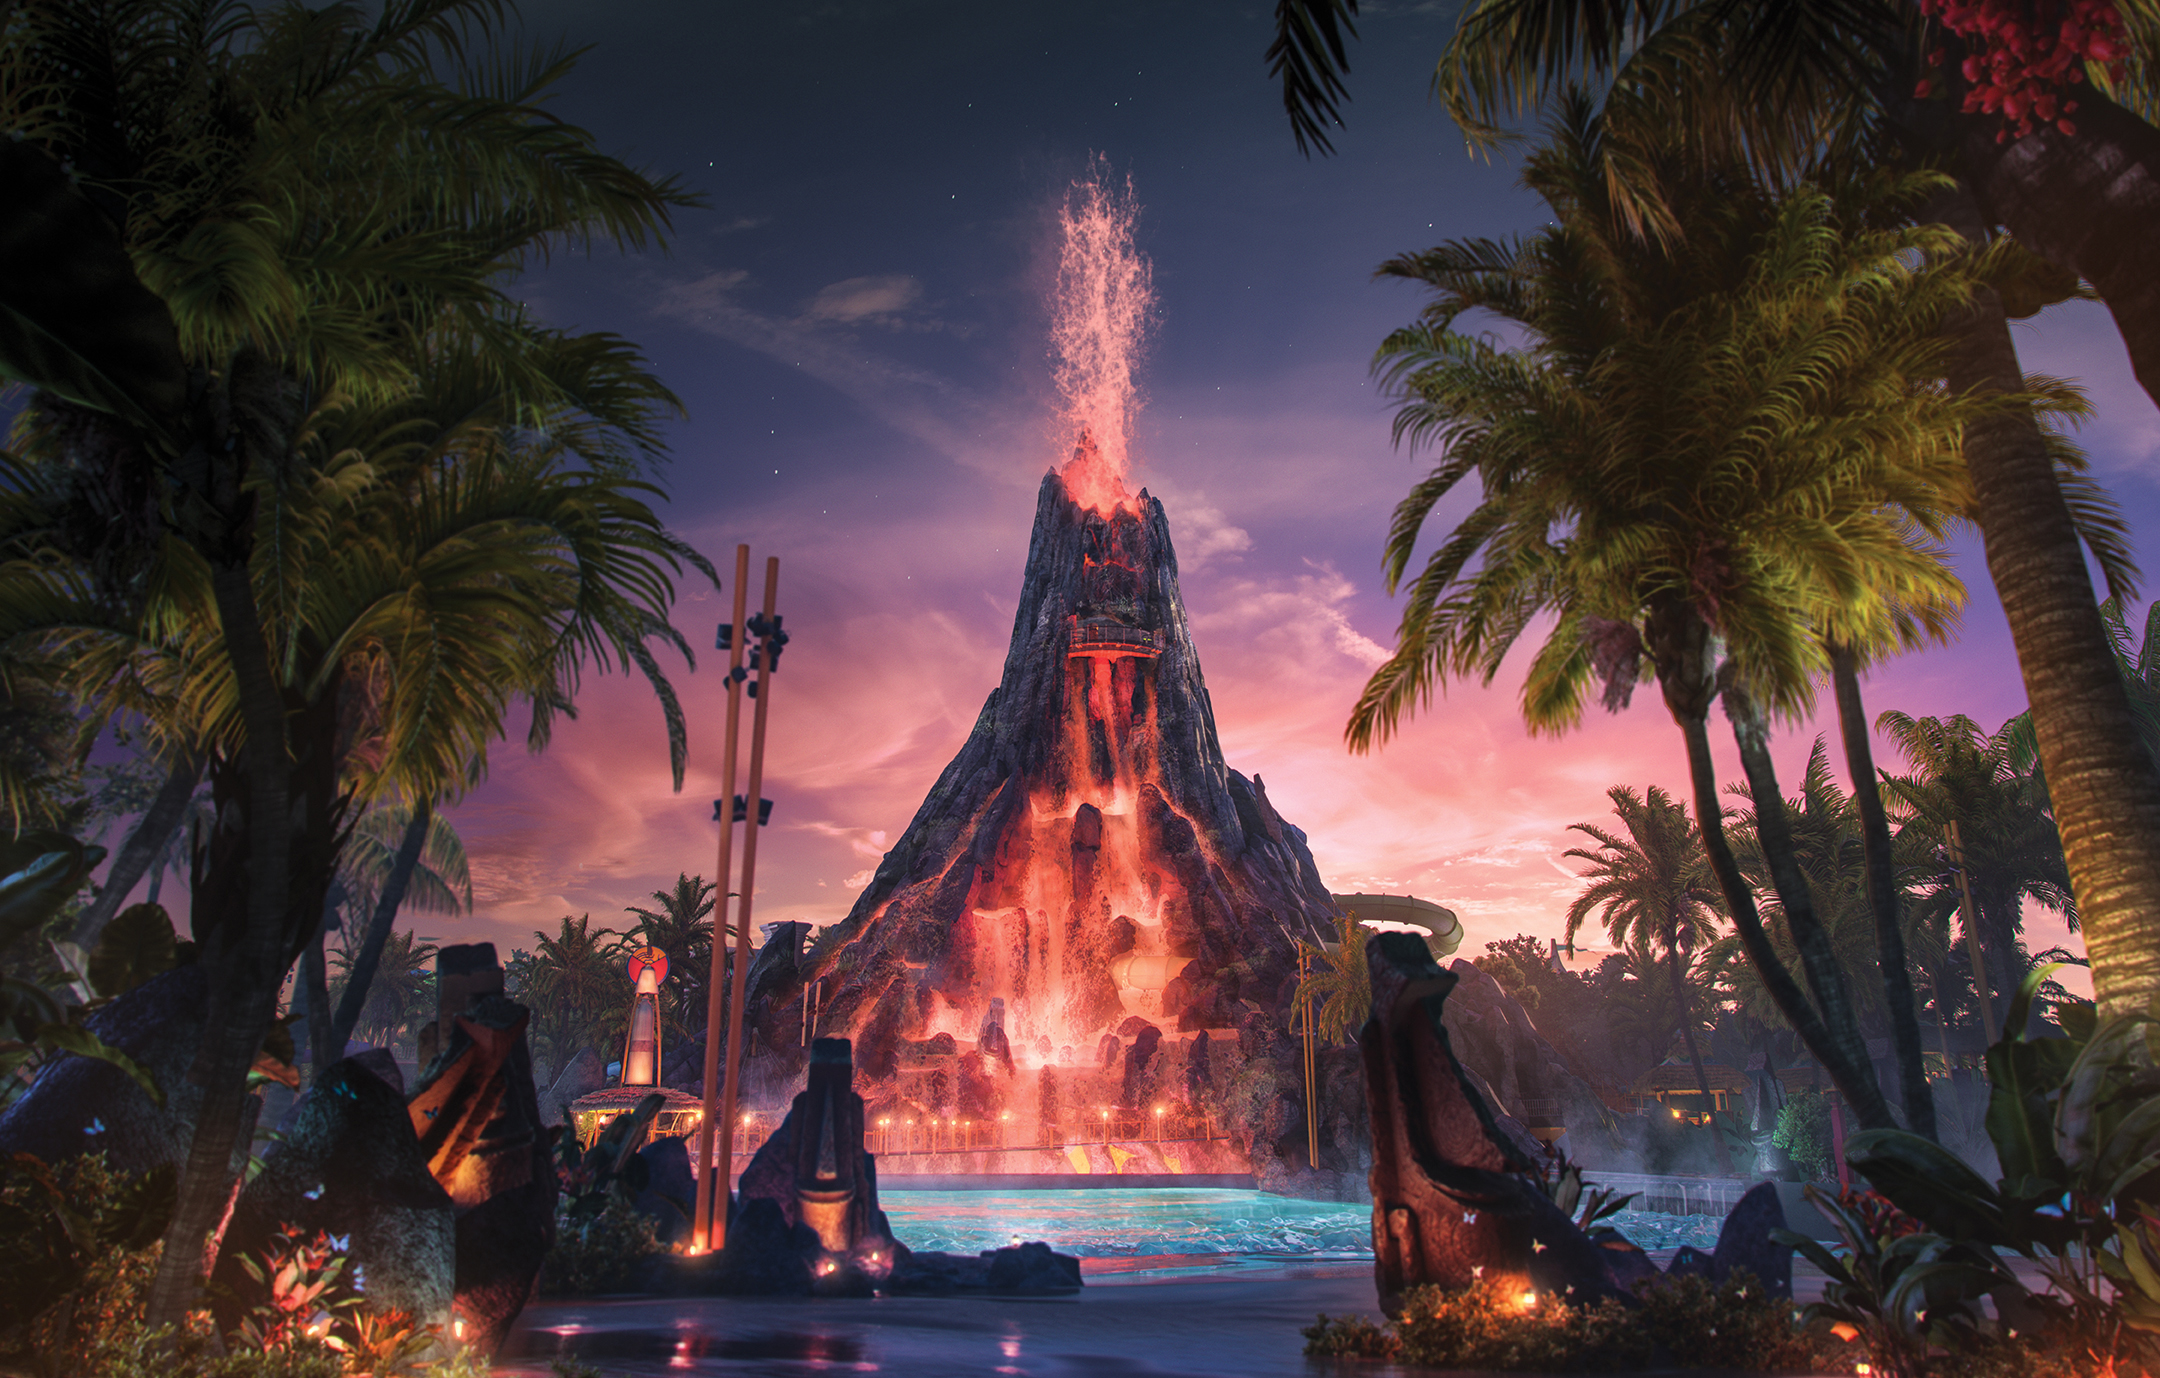 Evening views of Universal's new Volcano Bay, a new waterpark opening summer 2017.